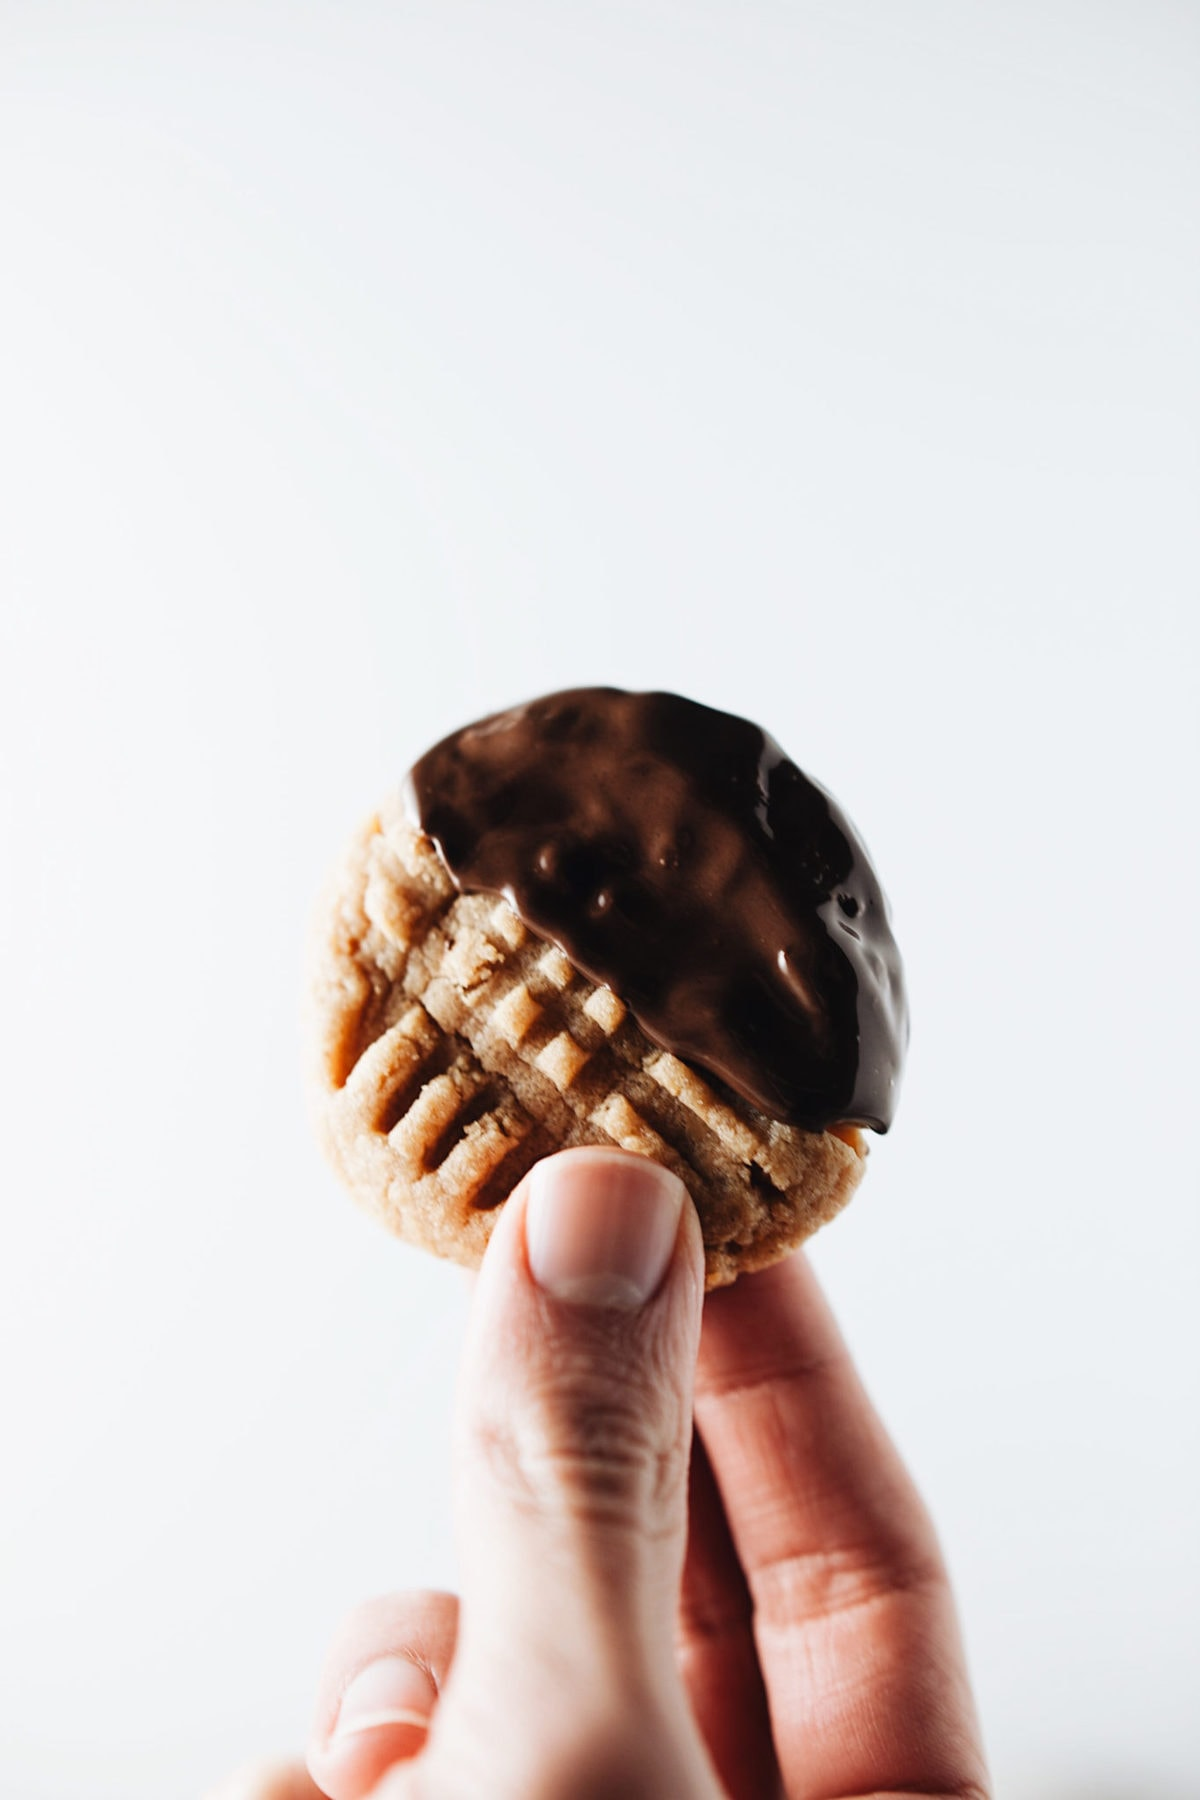 Hand holding up a chocolate-dipped peanut butter cookie with cross-hatch pattern